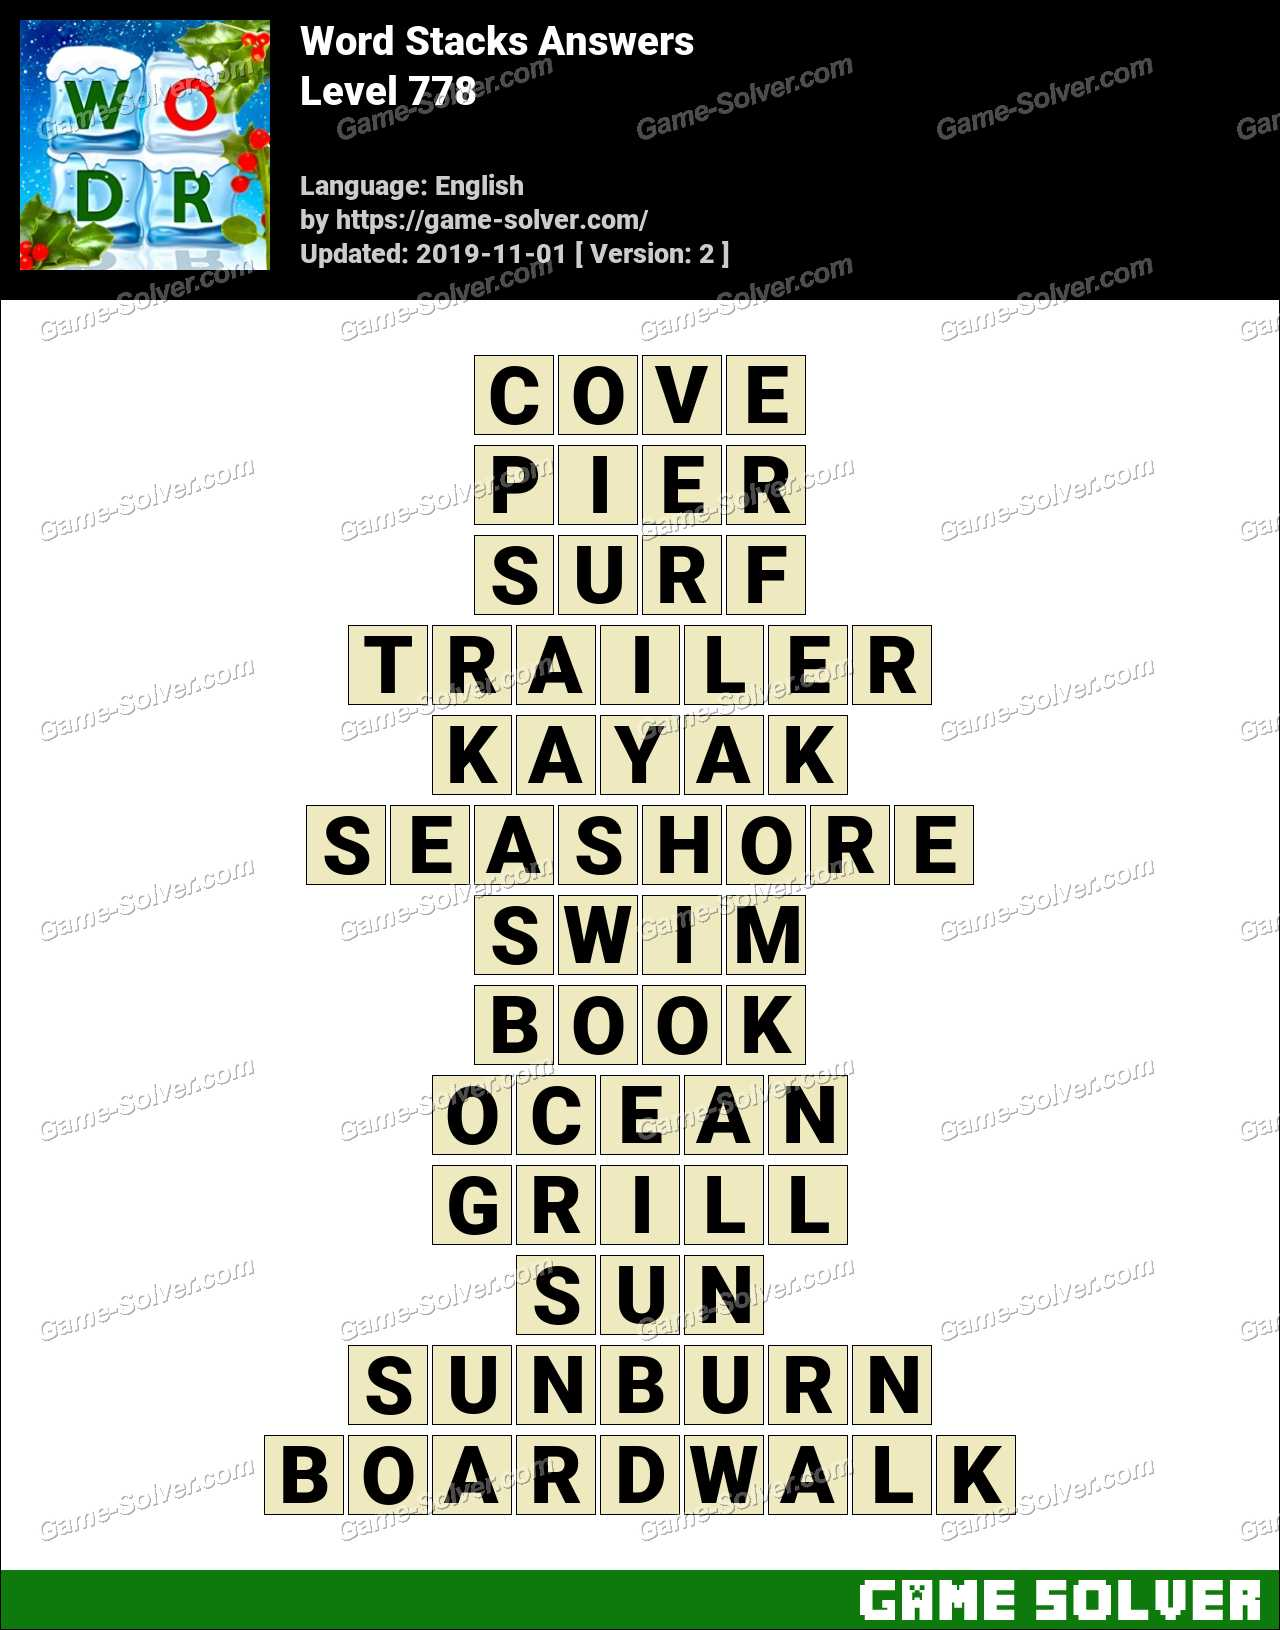 Word Stacks Level 778 Answers